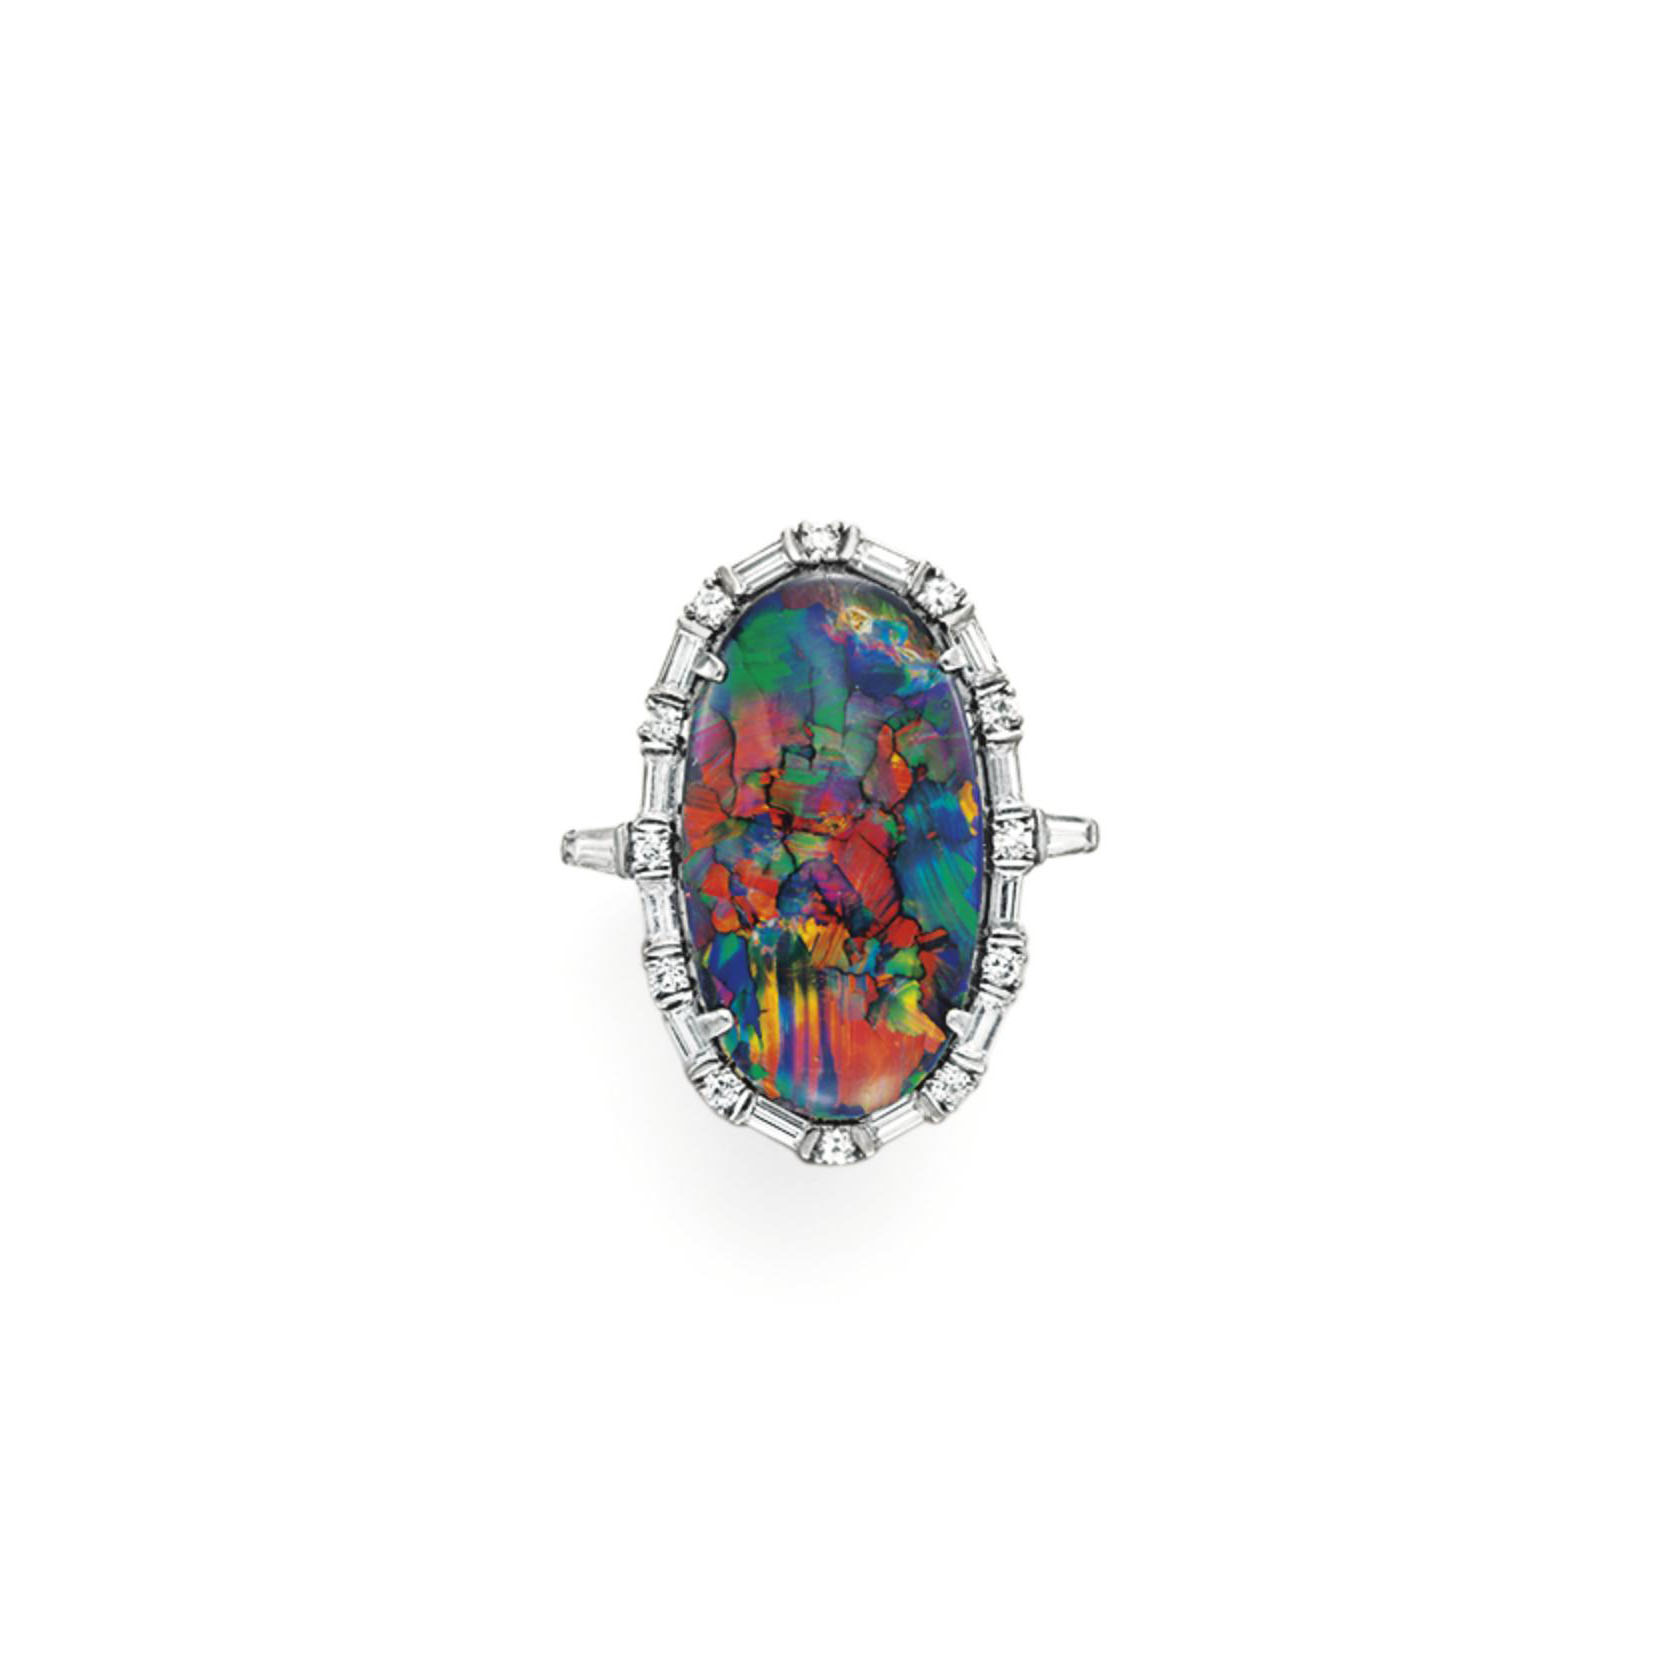 AN OPAL AND DIAMOND RING, BY BAILEY BANKS & BIDDLE